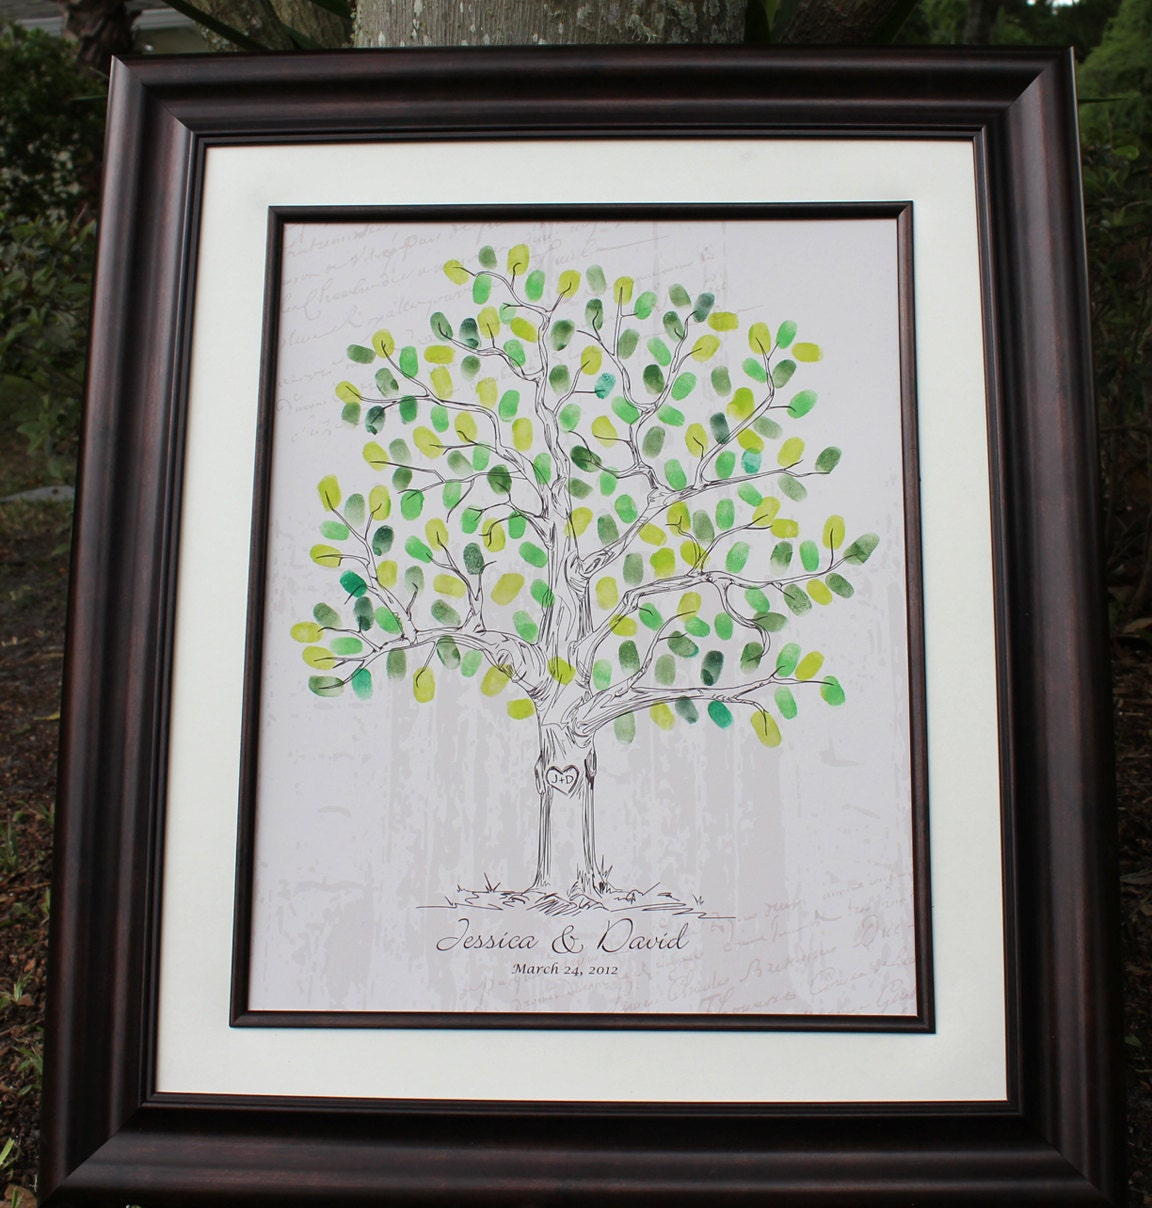 Wedding Guest Sign In Unique Book Ideas Alternative Thumbprint Tree Fingerprint Drawn